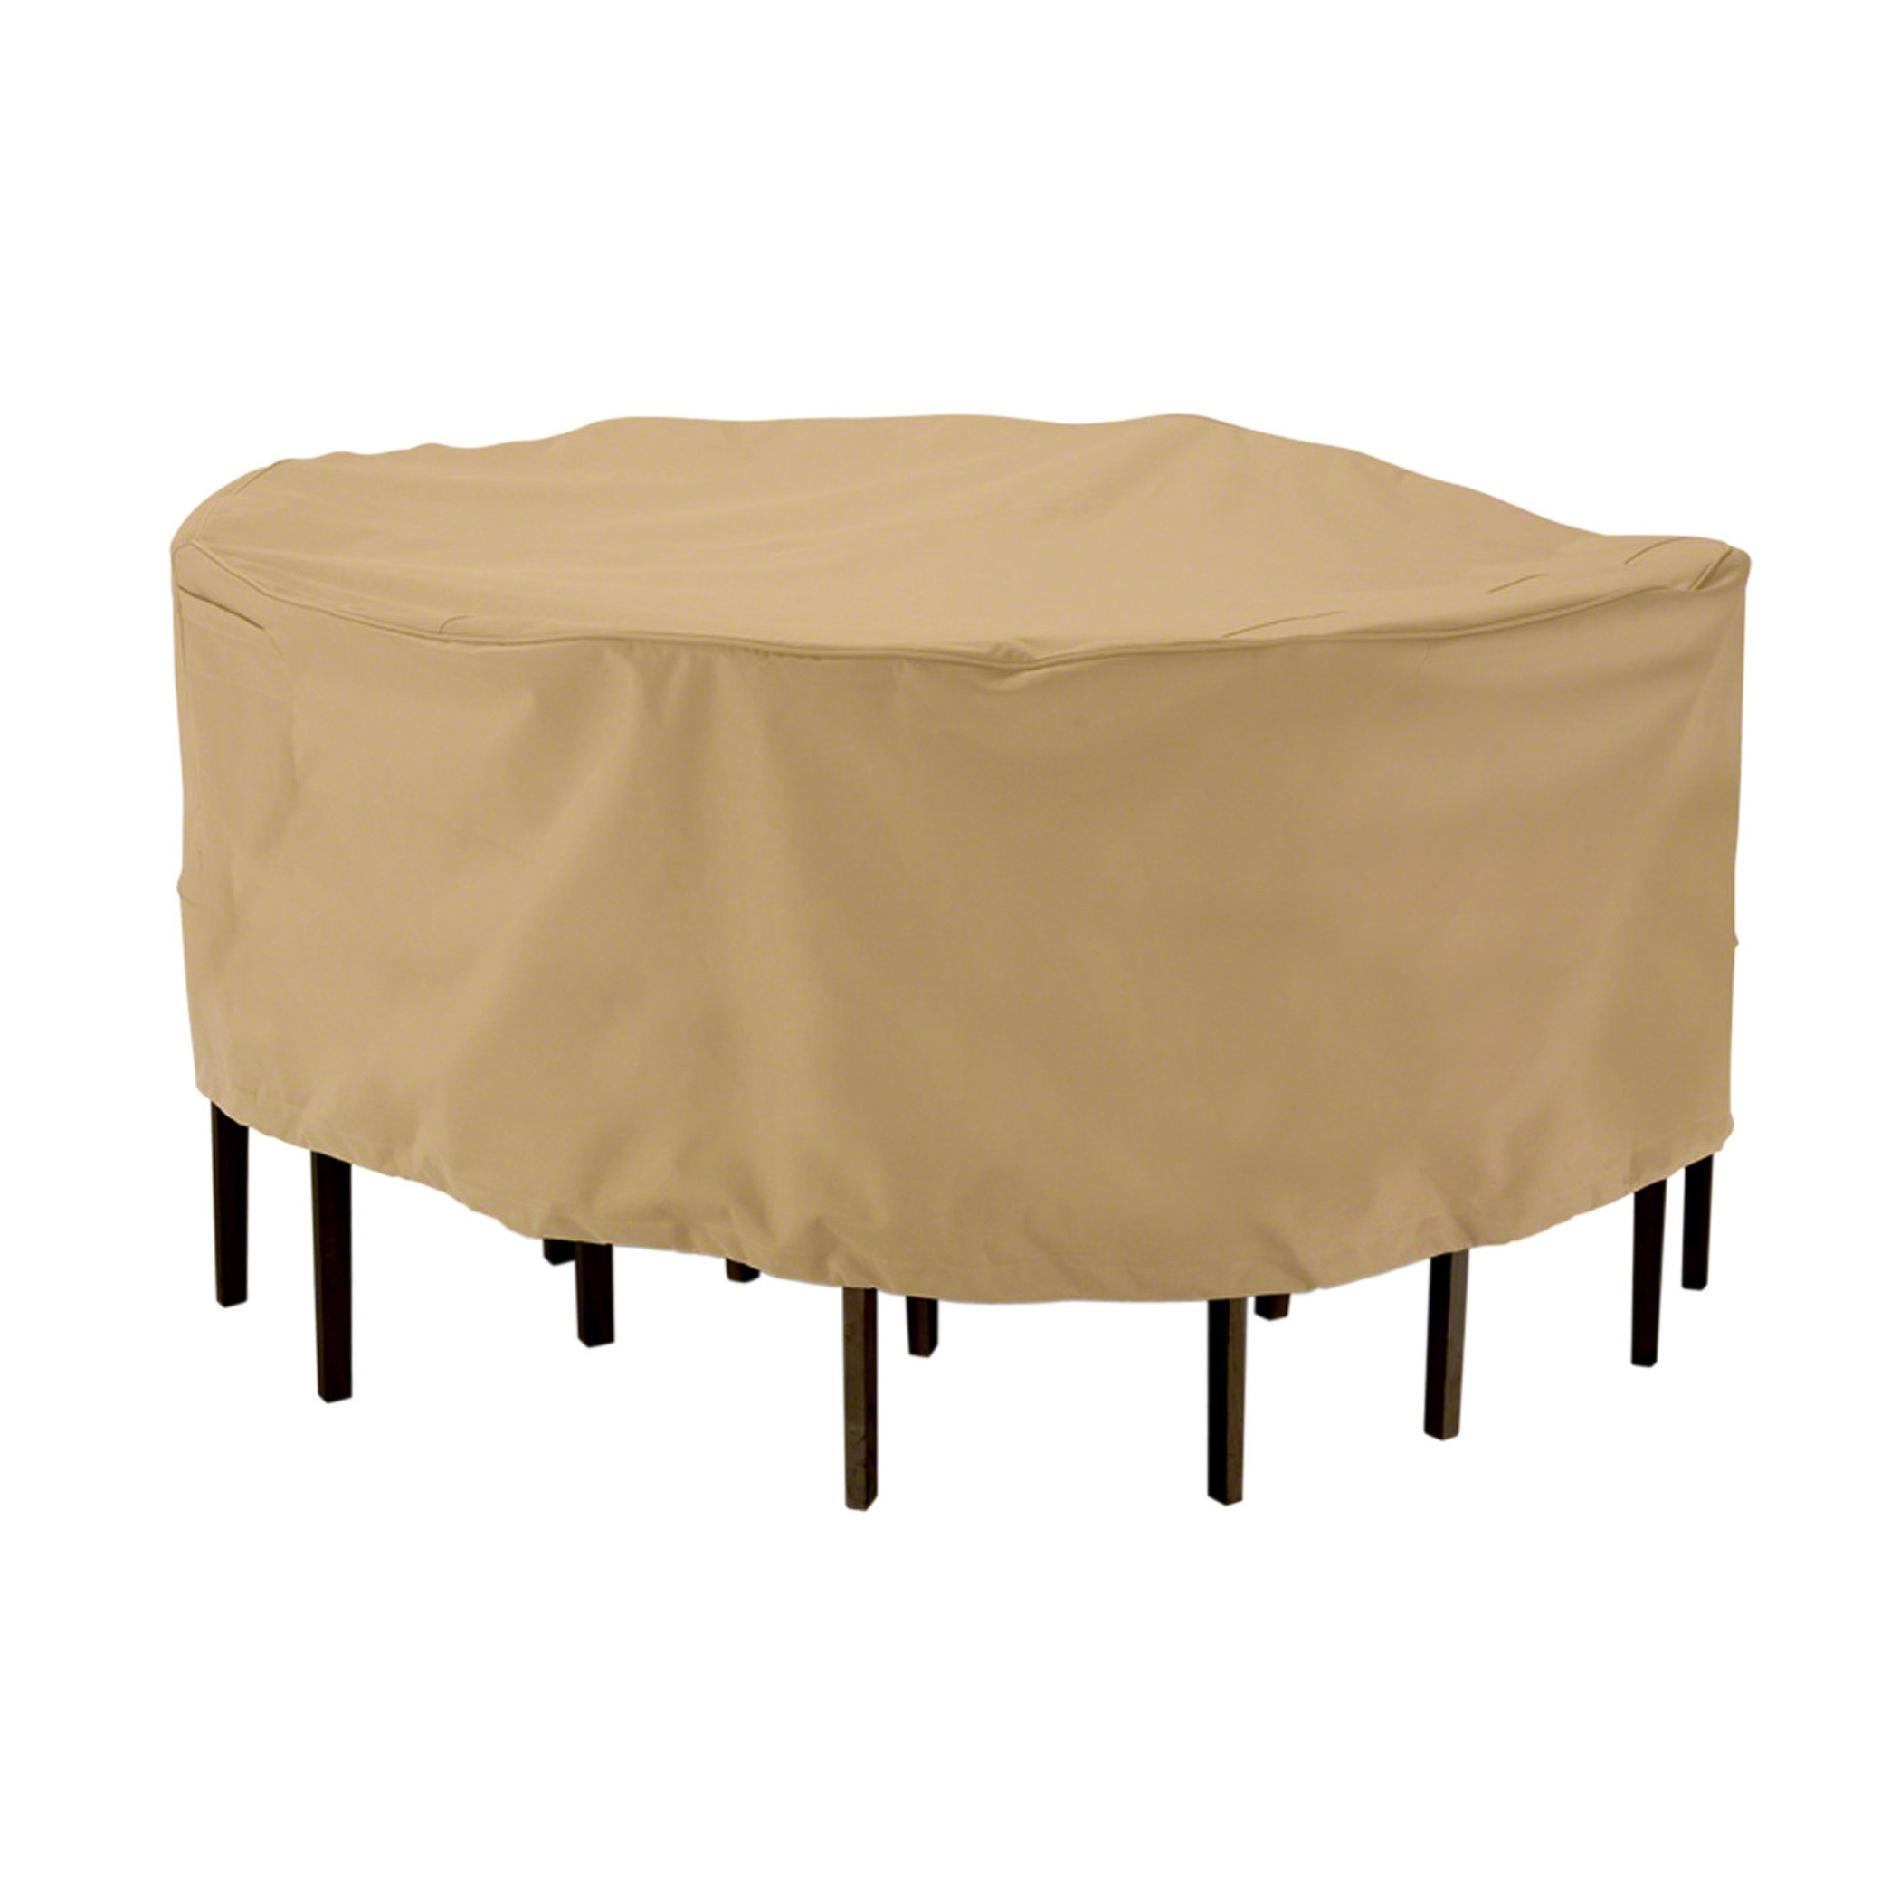 Classic Accessories Tall Table - chair set cover - ROUND